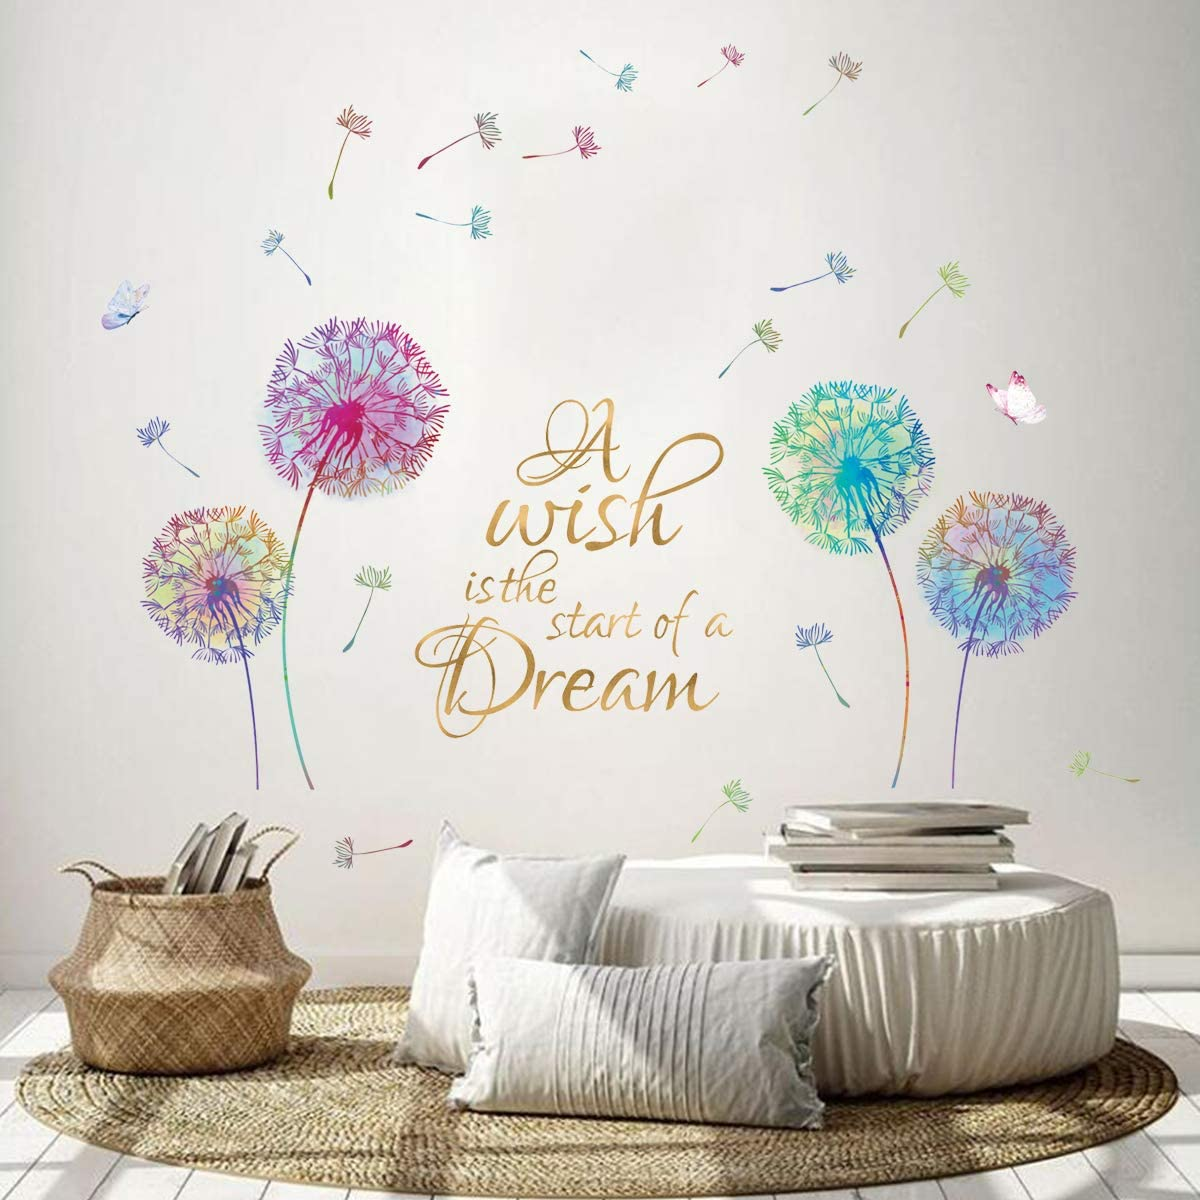 Dandelions Wall Decals Quotes May the Warm Winds Of Heaven Phrase Lettering Vinyl Sticker Living Room Bedroom Decor Interiors Art NN1